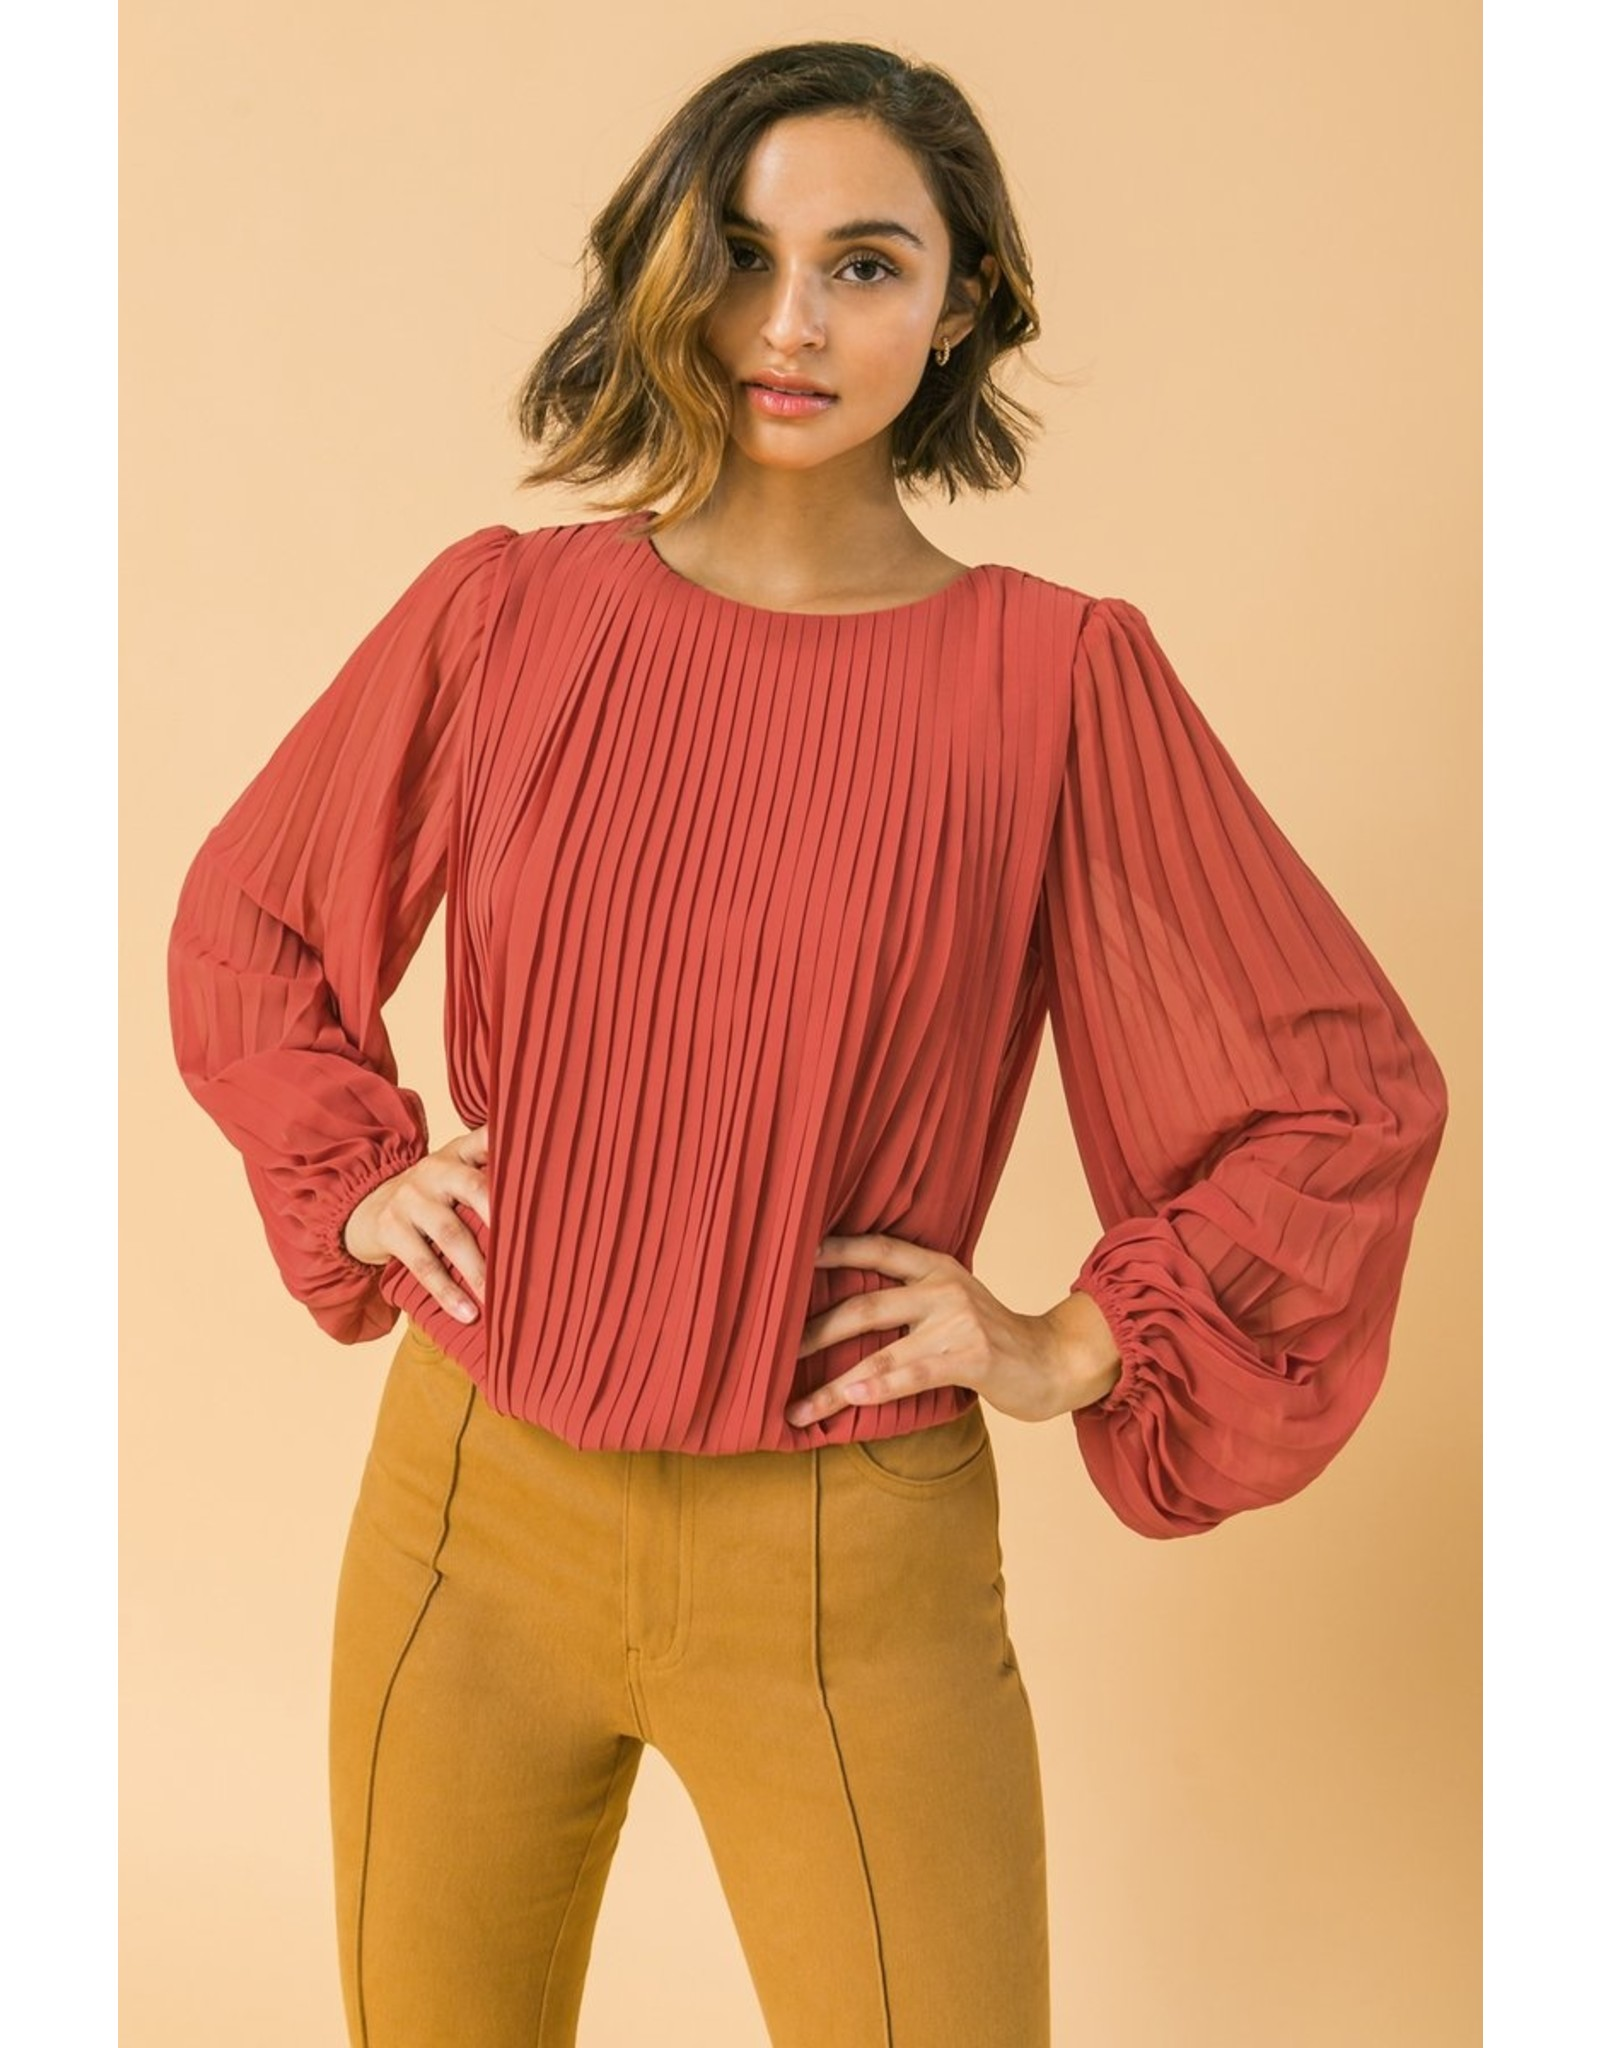 Pleated Bubble Sleeves Top - Rust